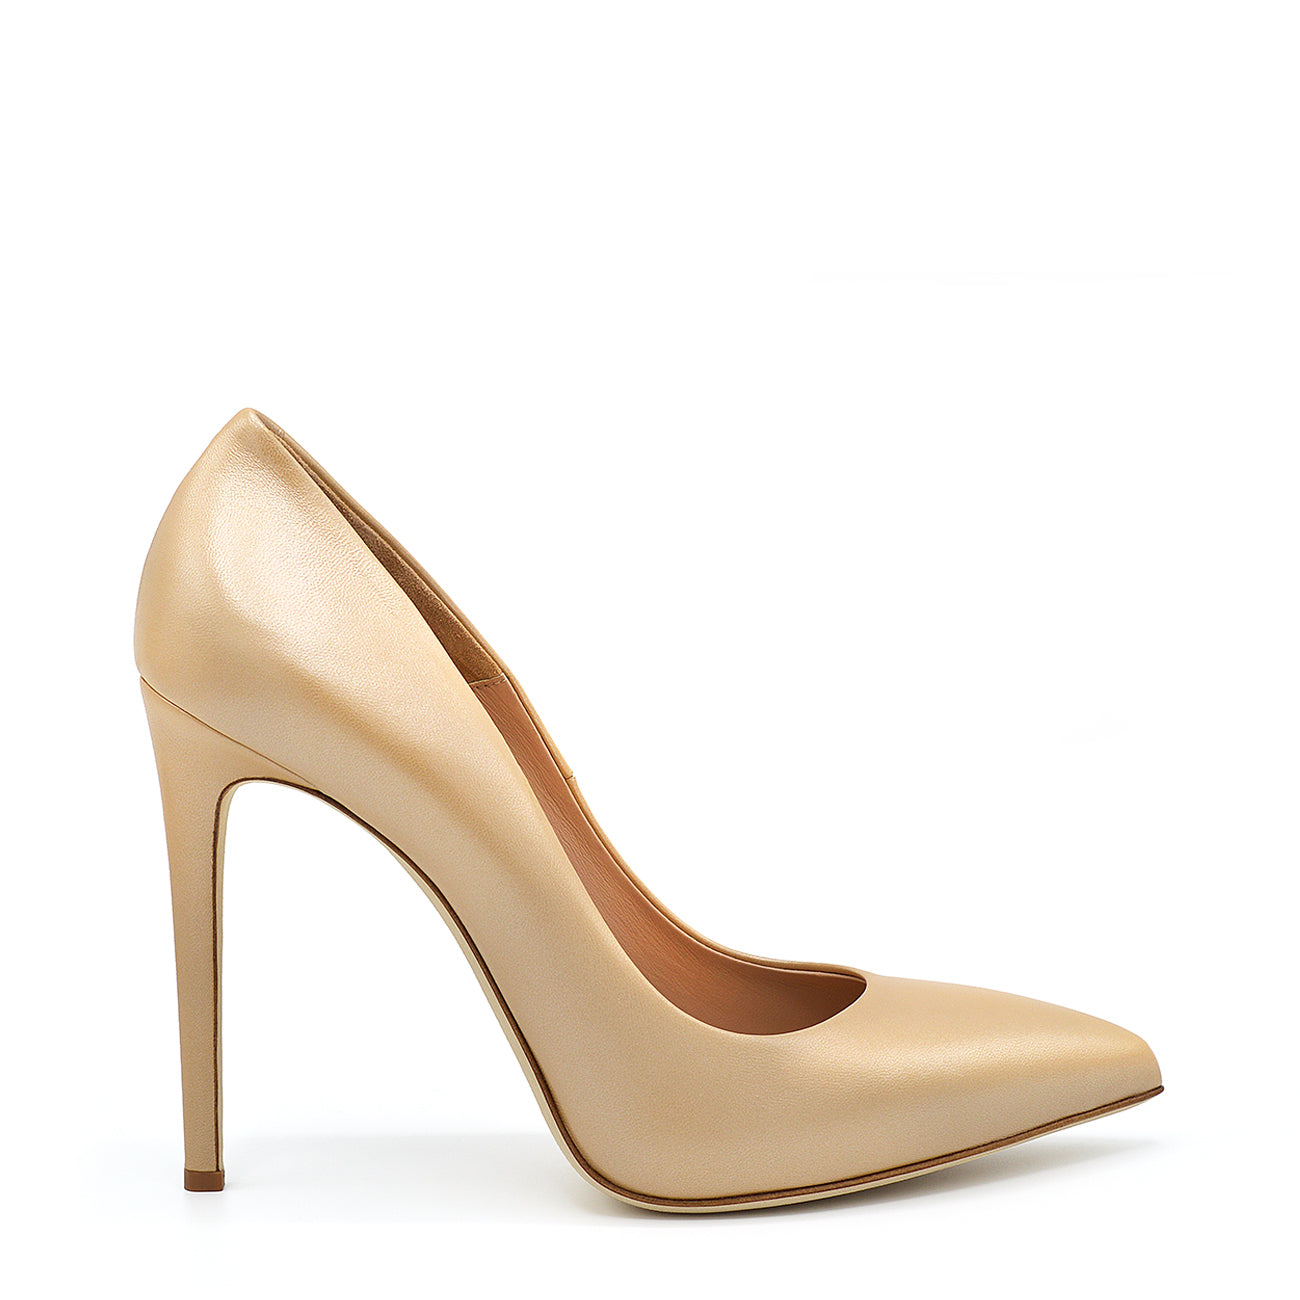 Xena. <br> Stiletto heel juta beige pearly palit leather pumps